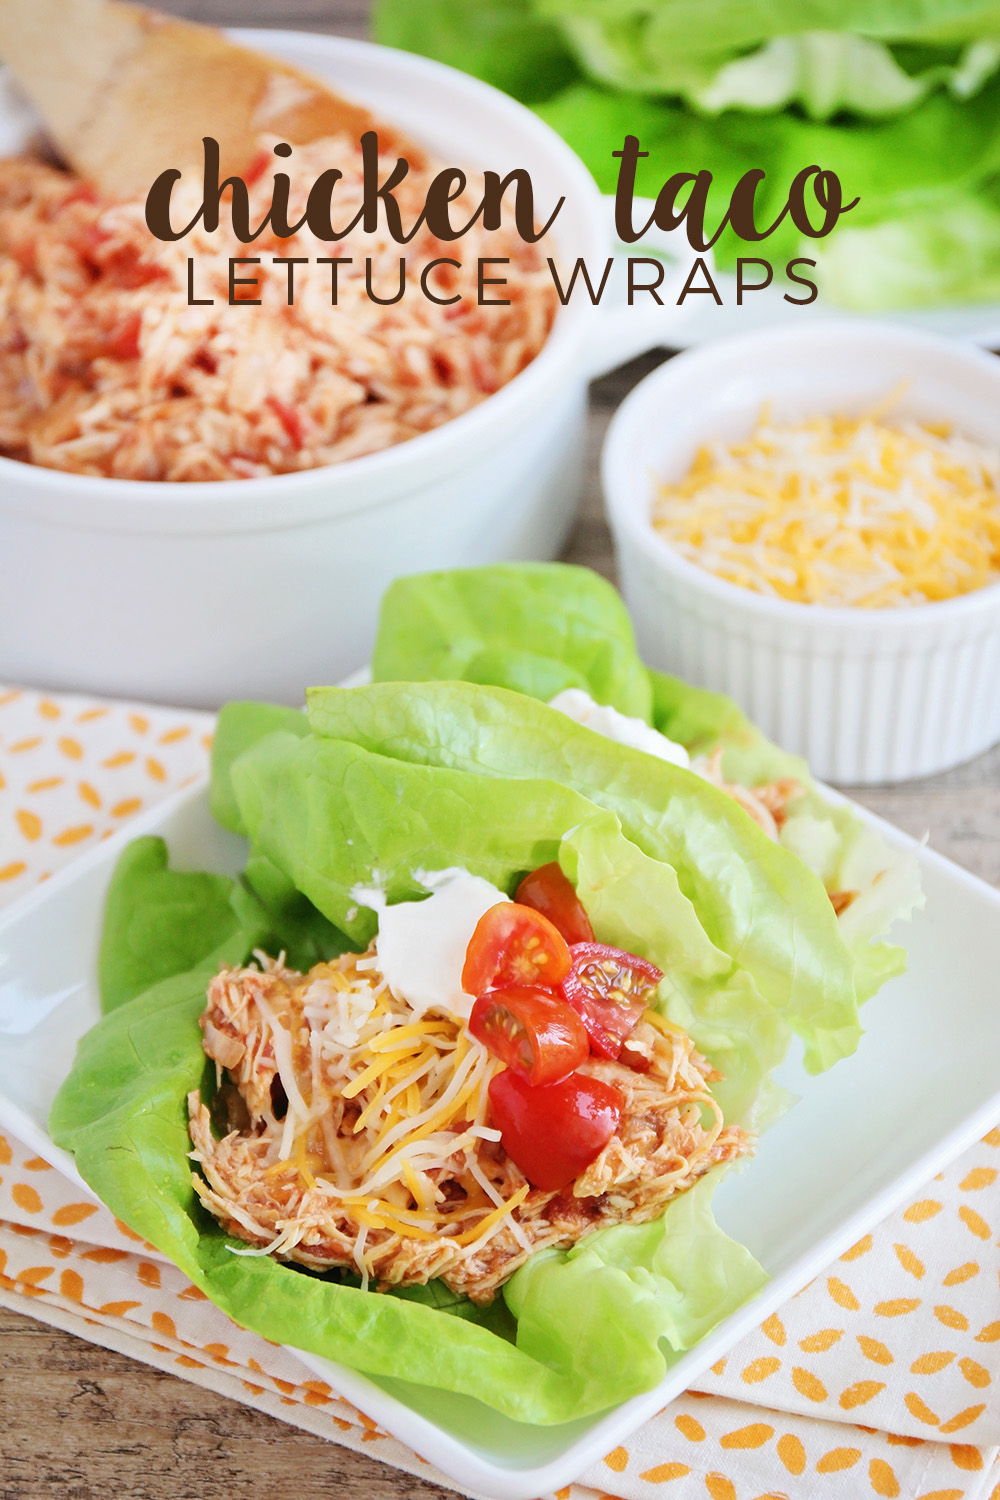 These chicken taco lettuce wraps are made in the slow cooker and so flavorful and delicious! They're the perfect healthy meal for a busy day.